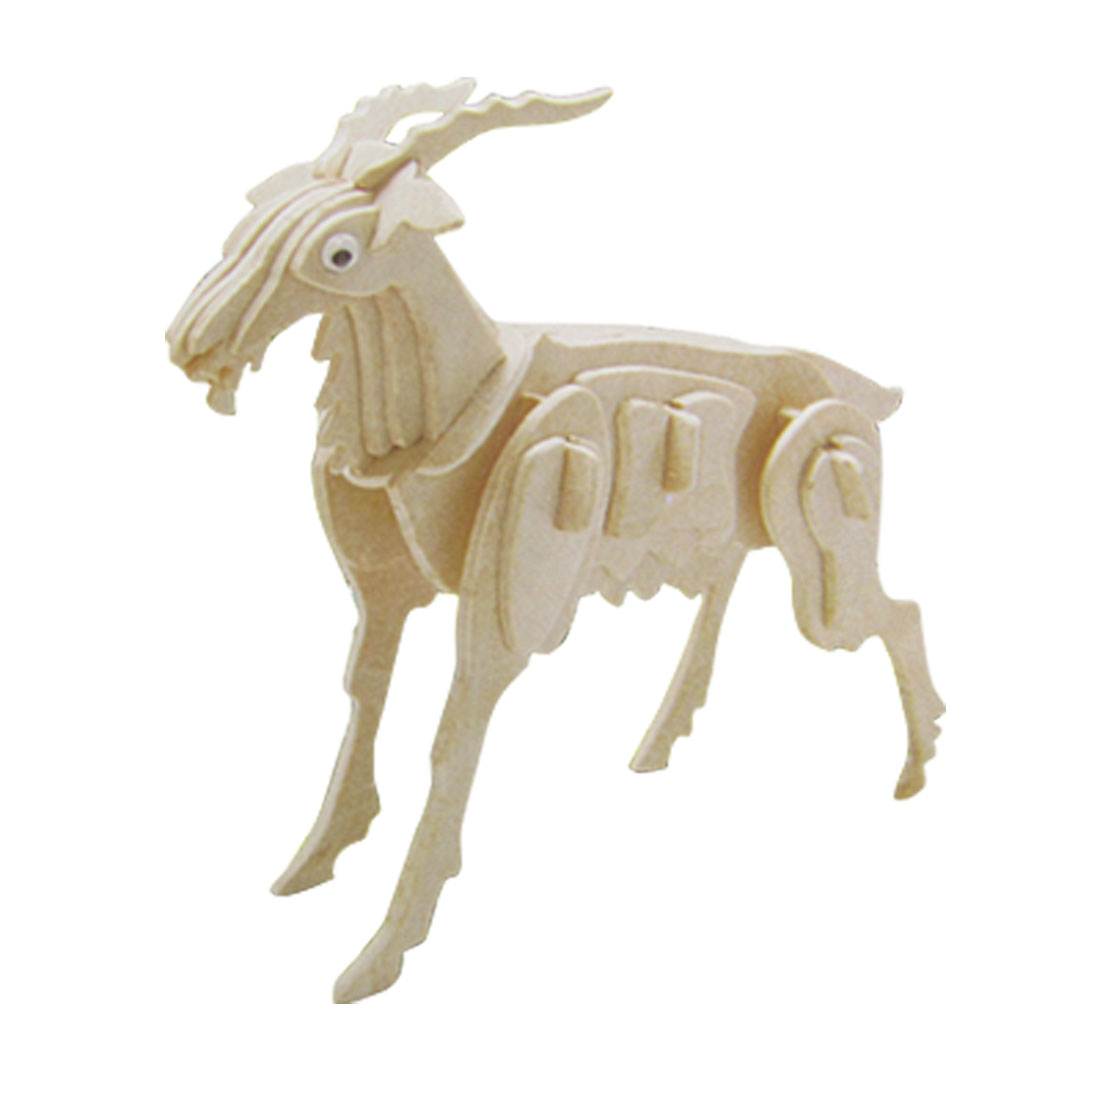 DIY Lover Goat Model Wooden Assemble Puzzled Toy